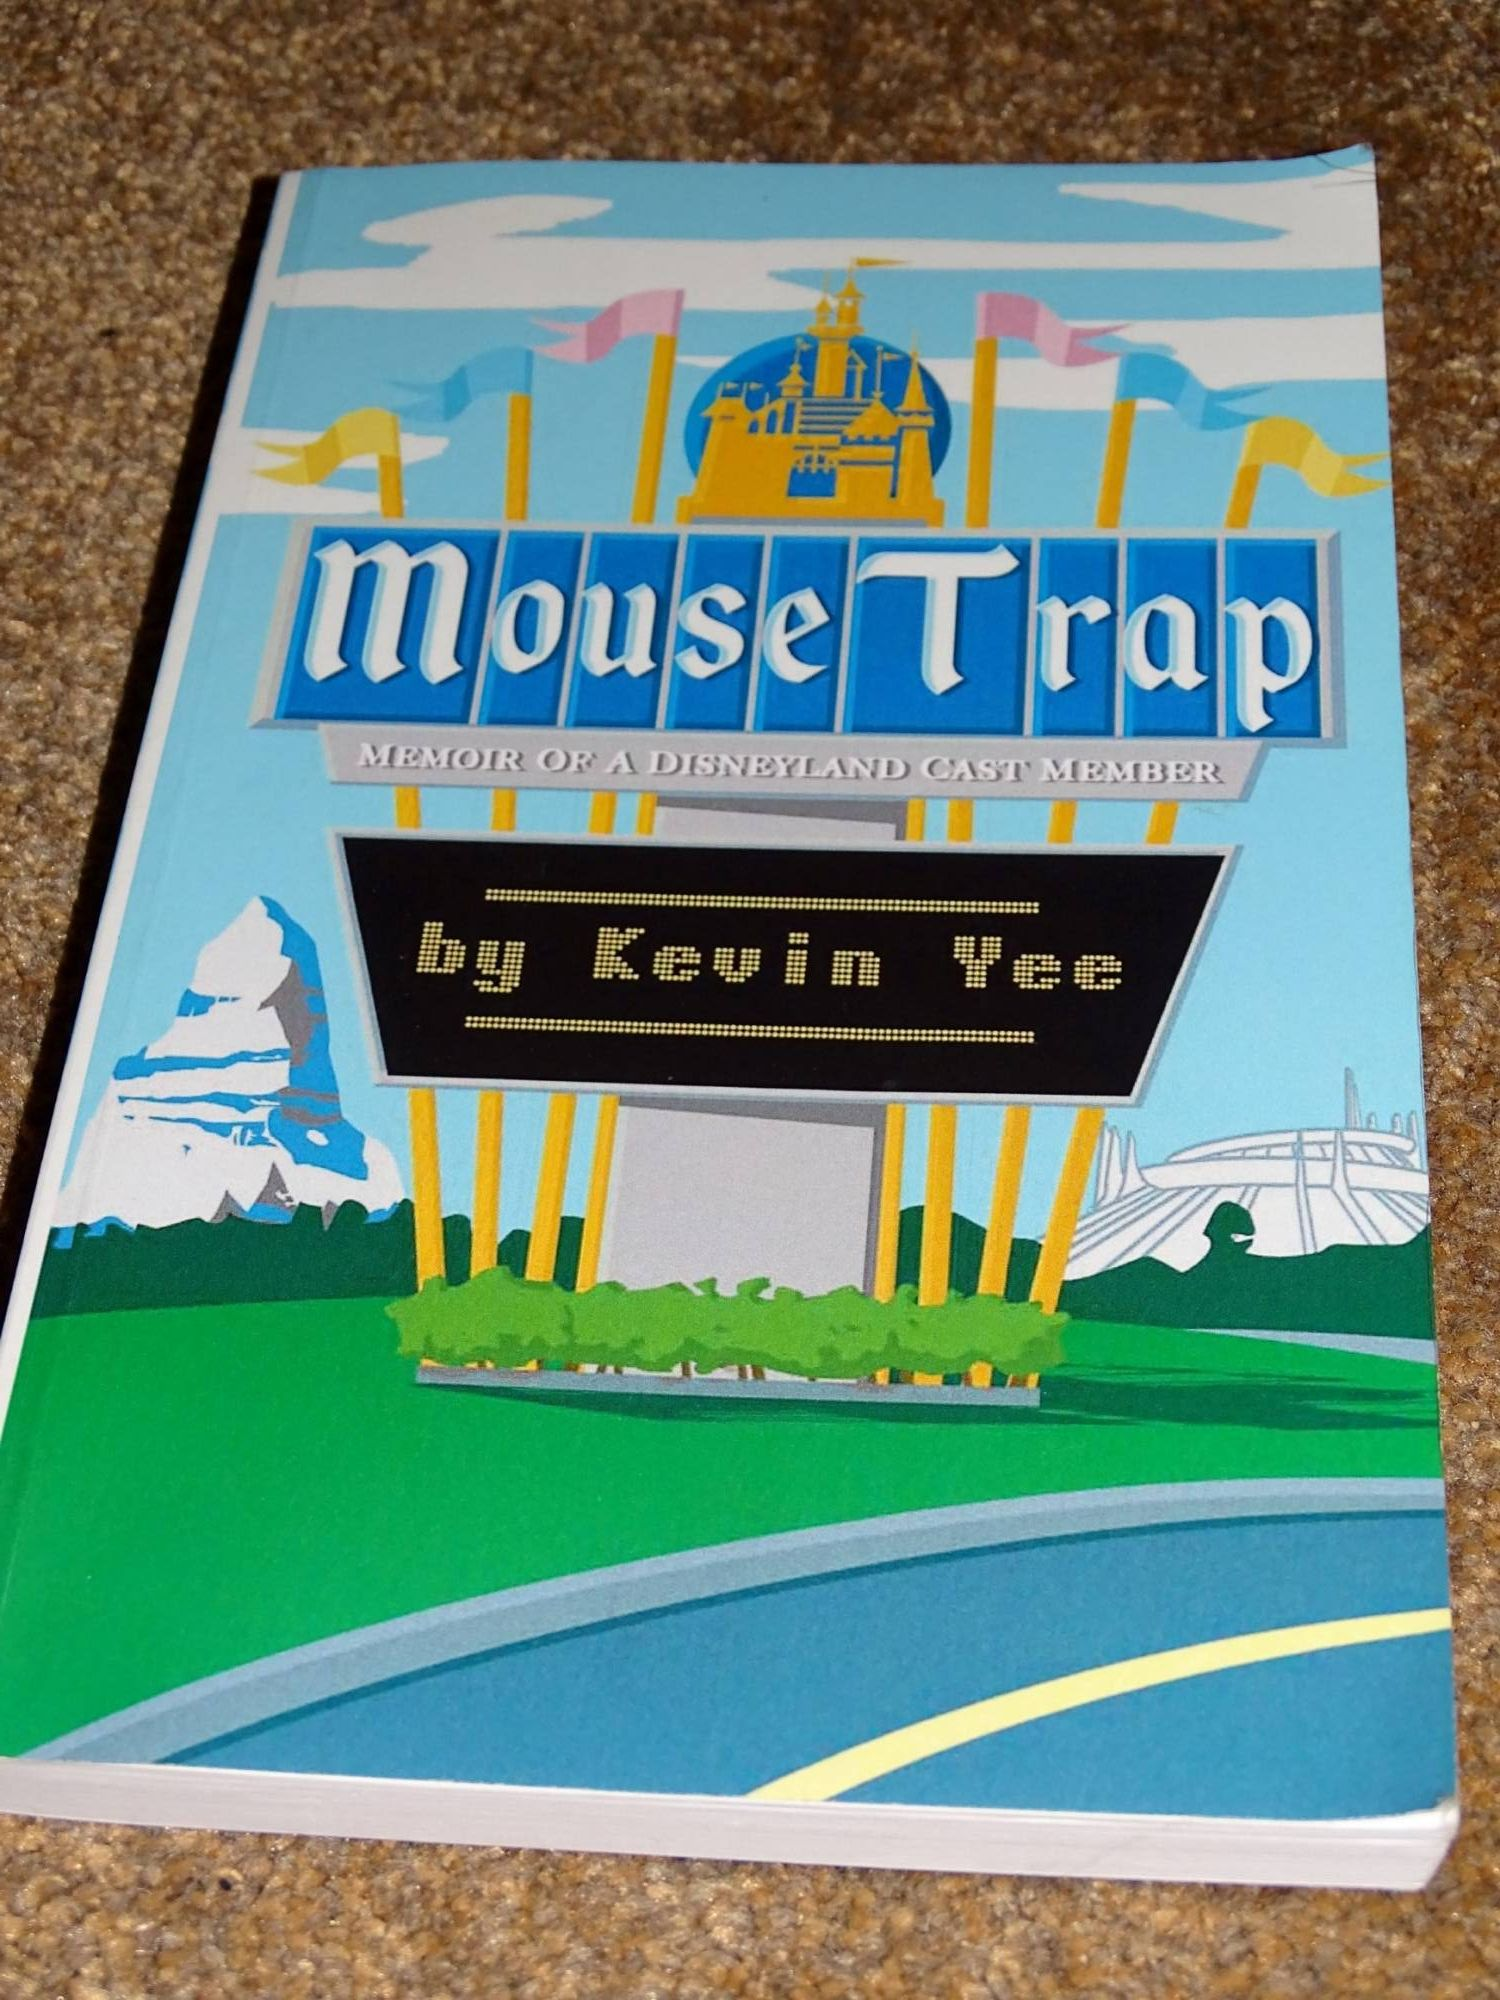 Learn what it is like to be a Disneyland Cast Member in Mouse Trap by Kevin Yee |PassPorter.com